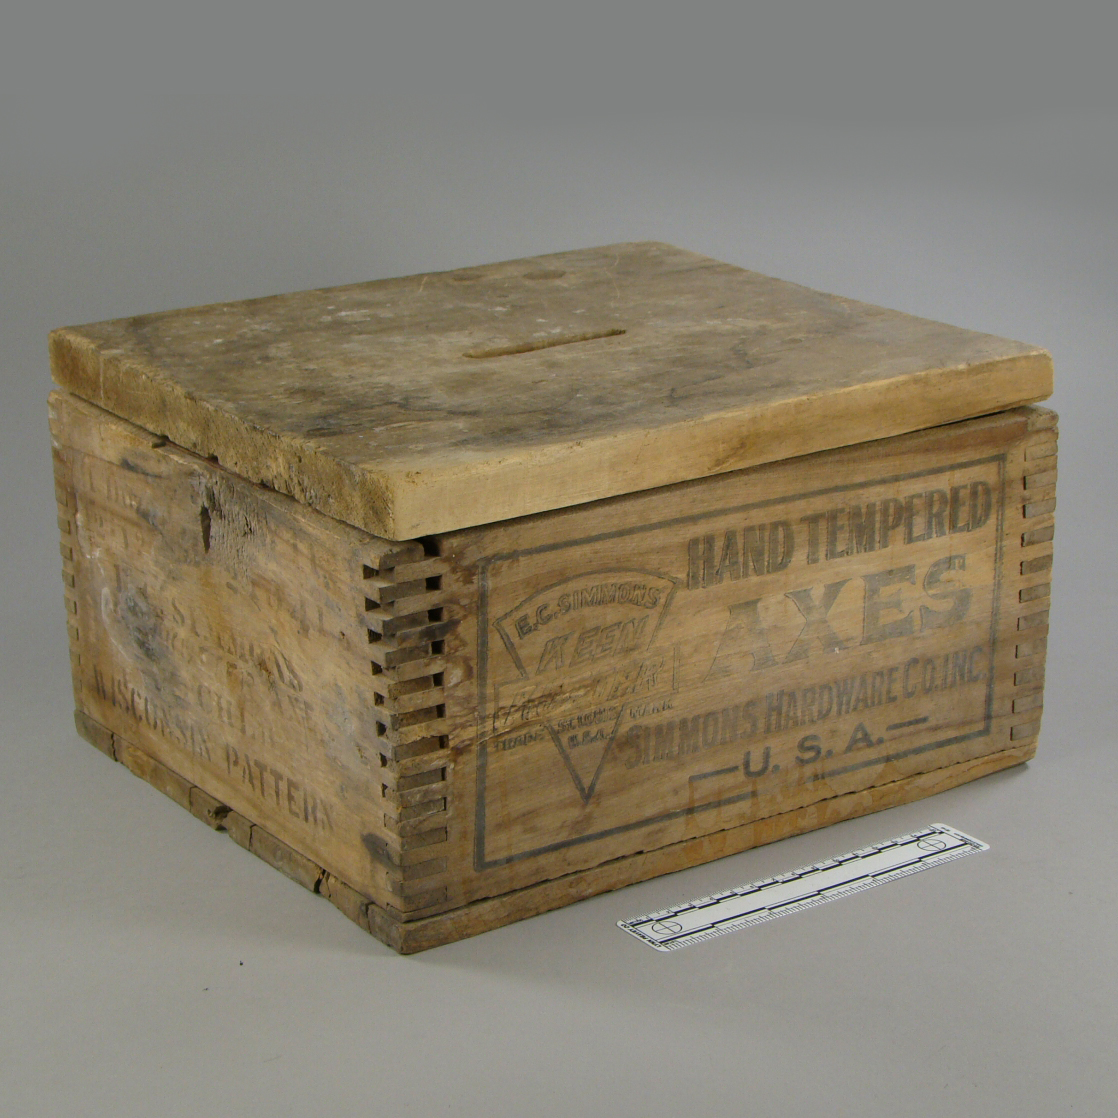 Ballot Box used in Town of Weston, Clark County, Wisconsin, ca. 1915.